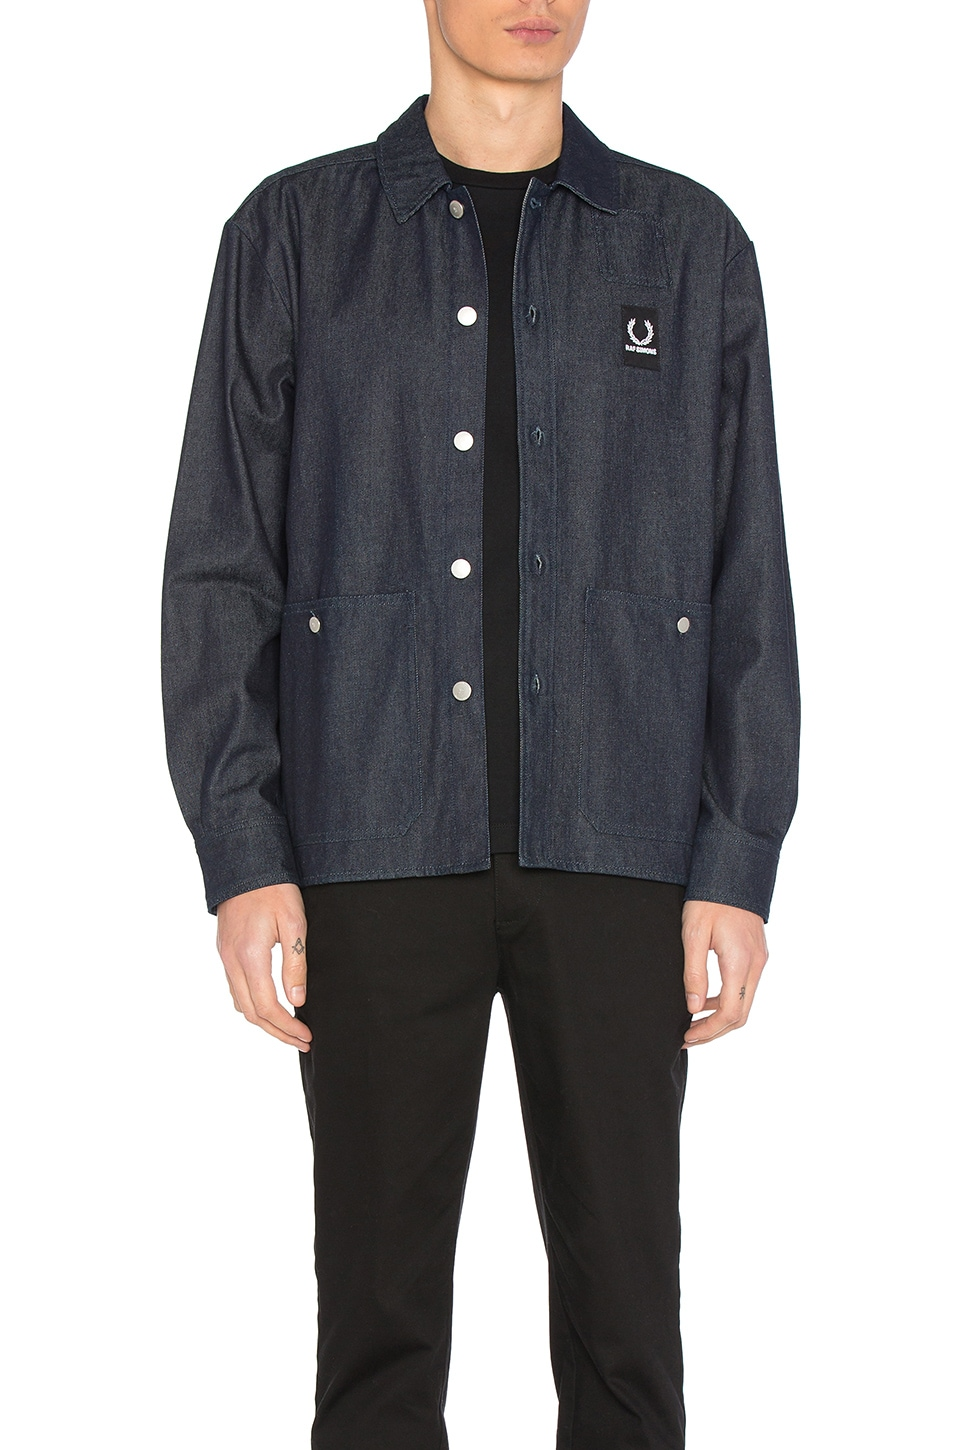 Denim Shirt Jacket by Fred Perry x Raf Simons